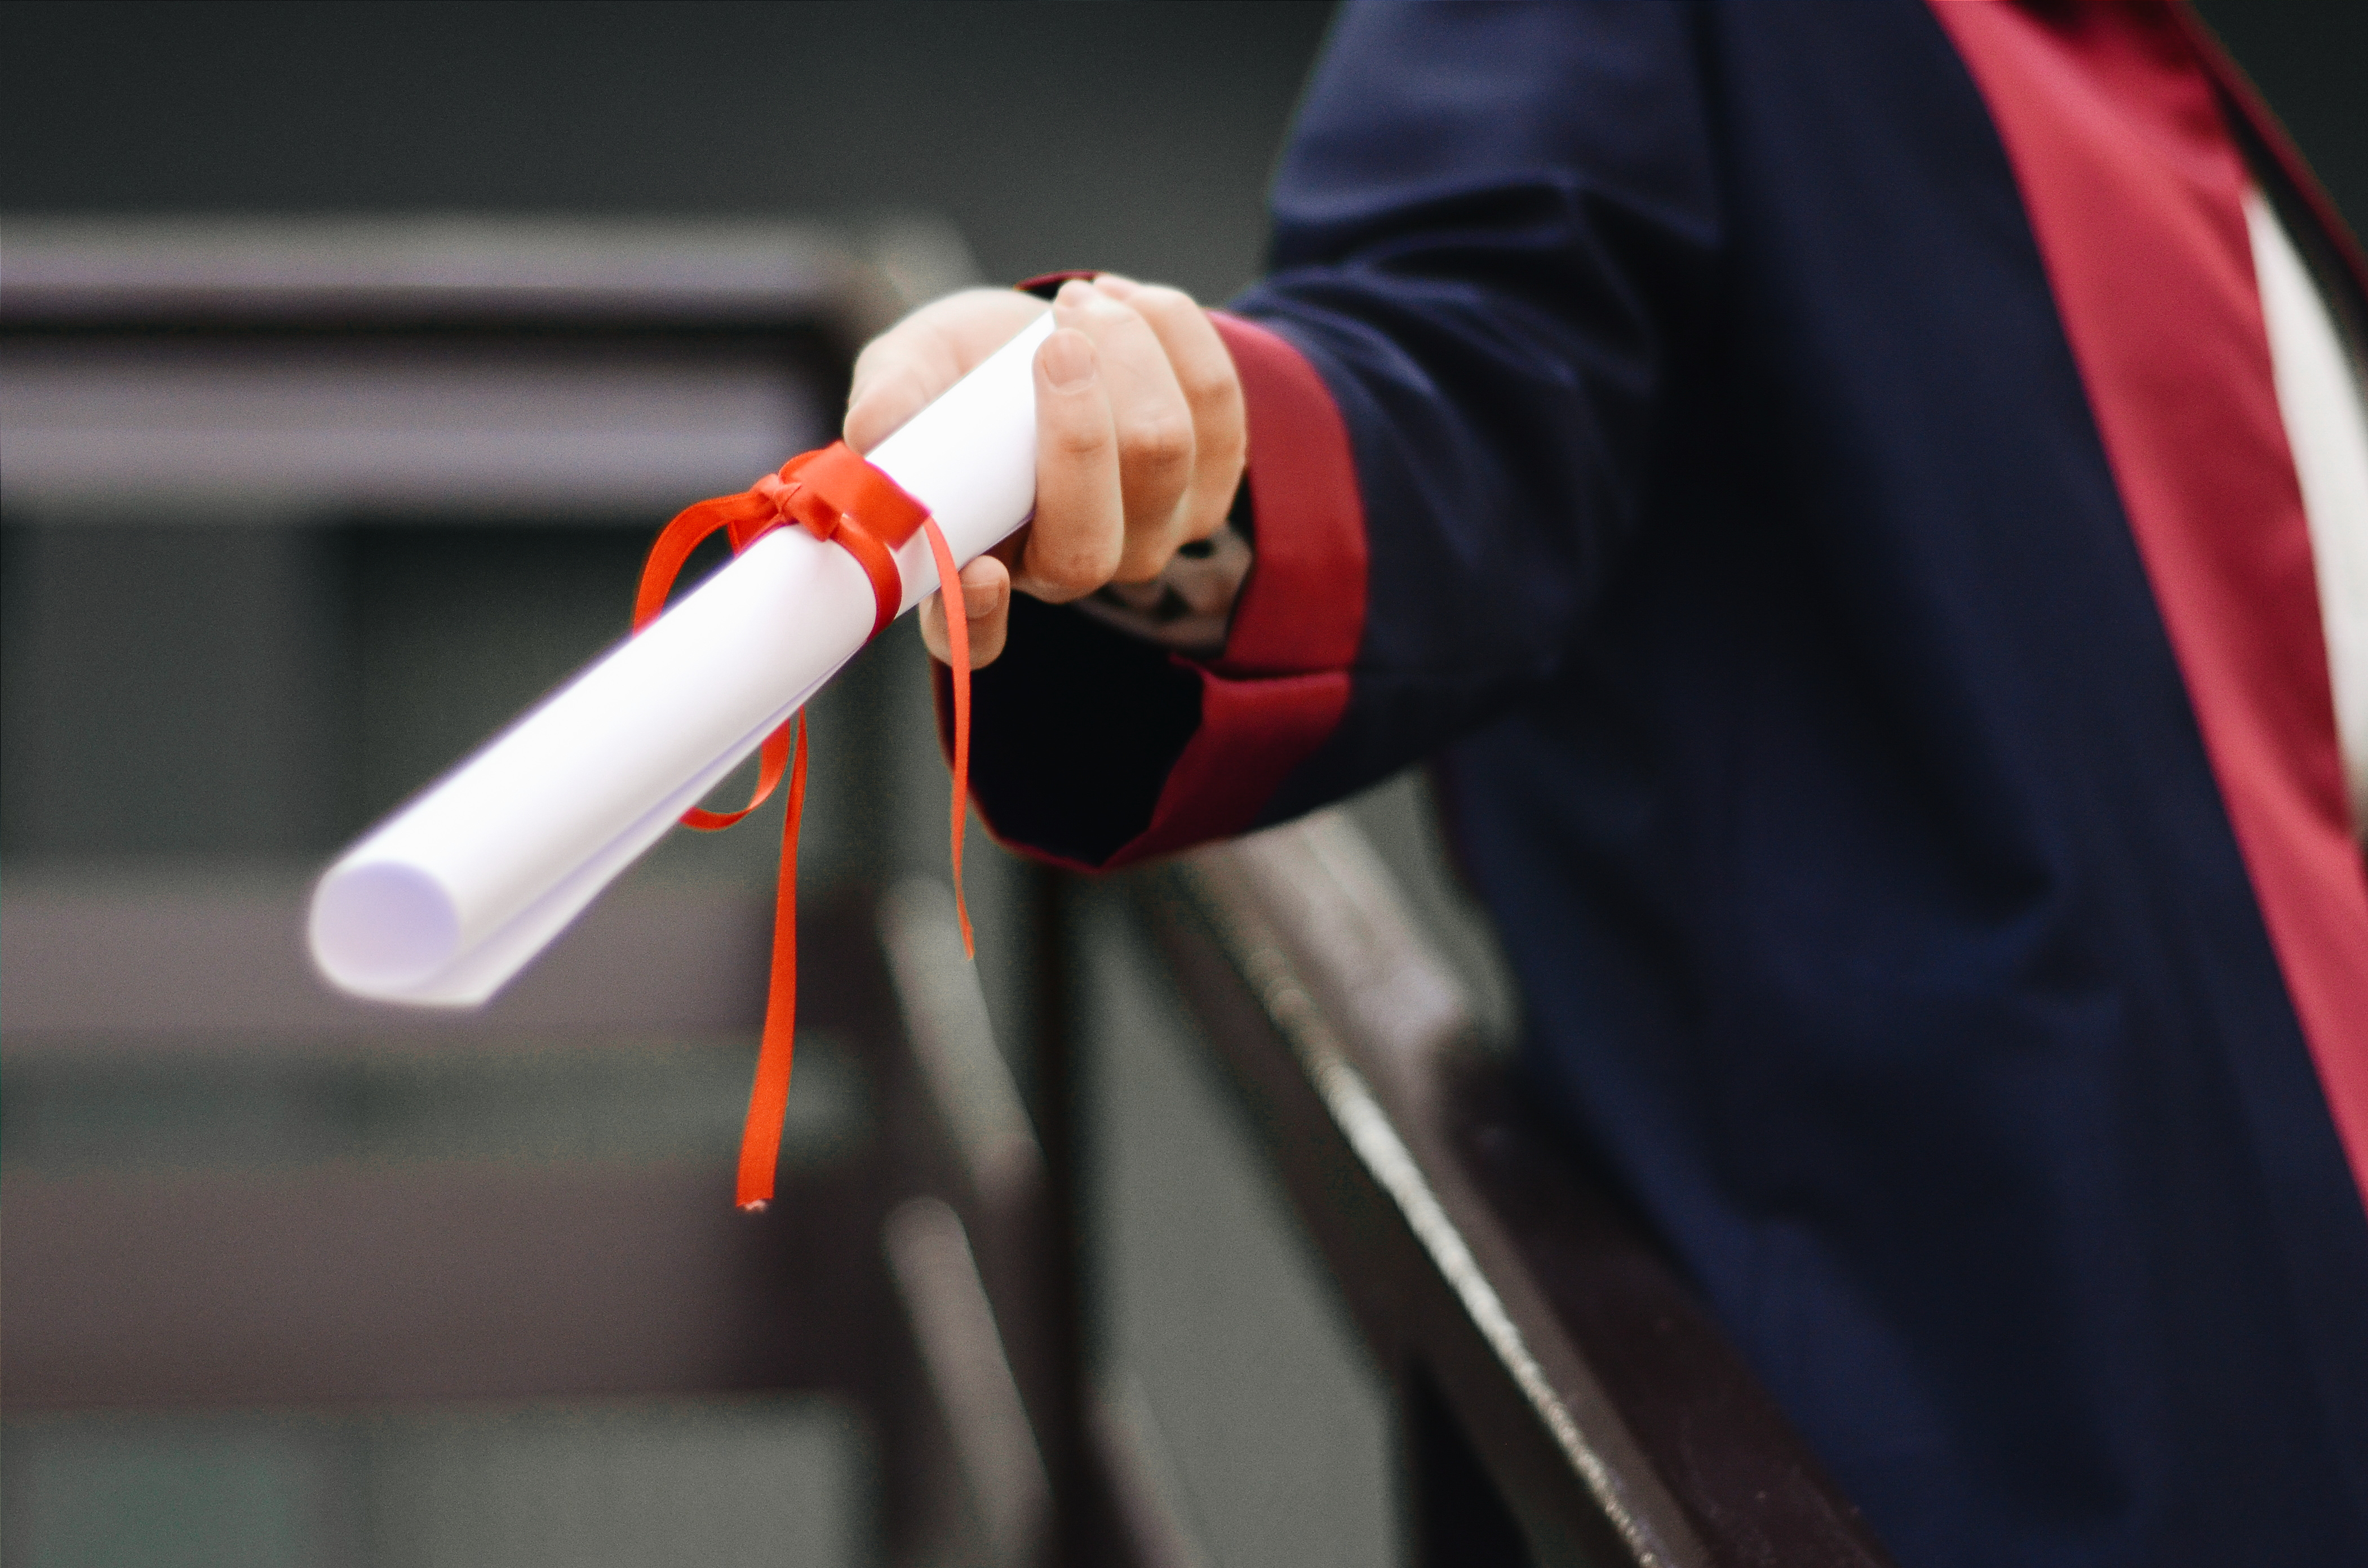 A person handing a rolled paper